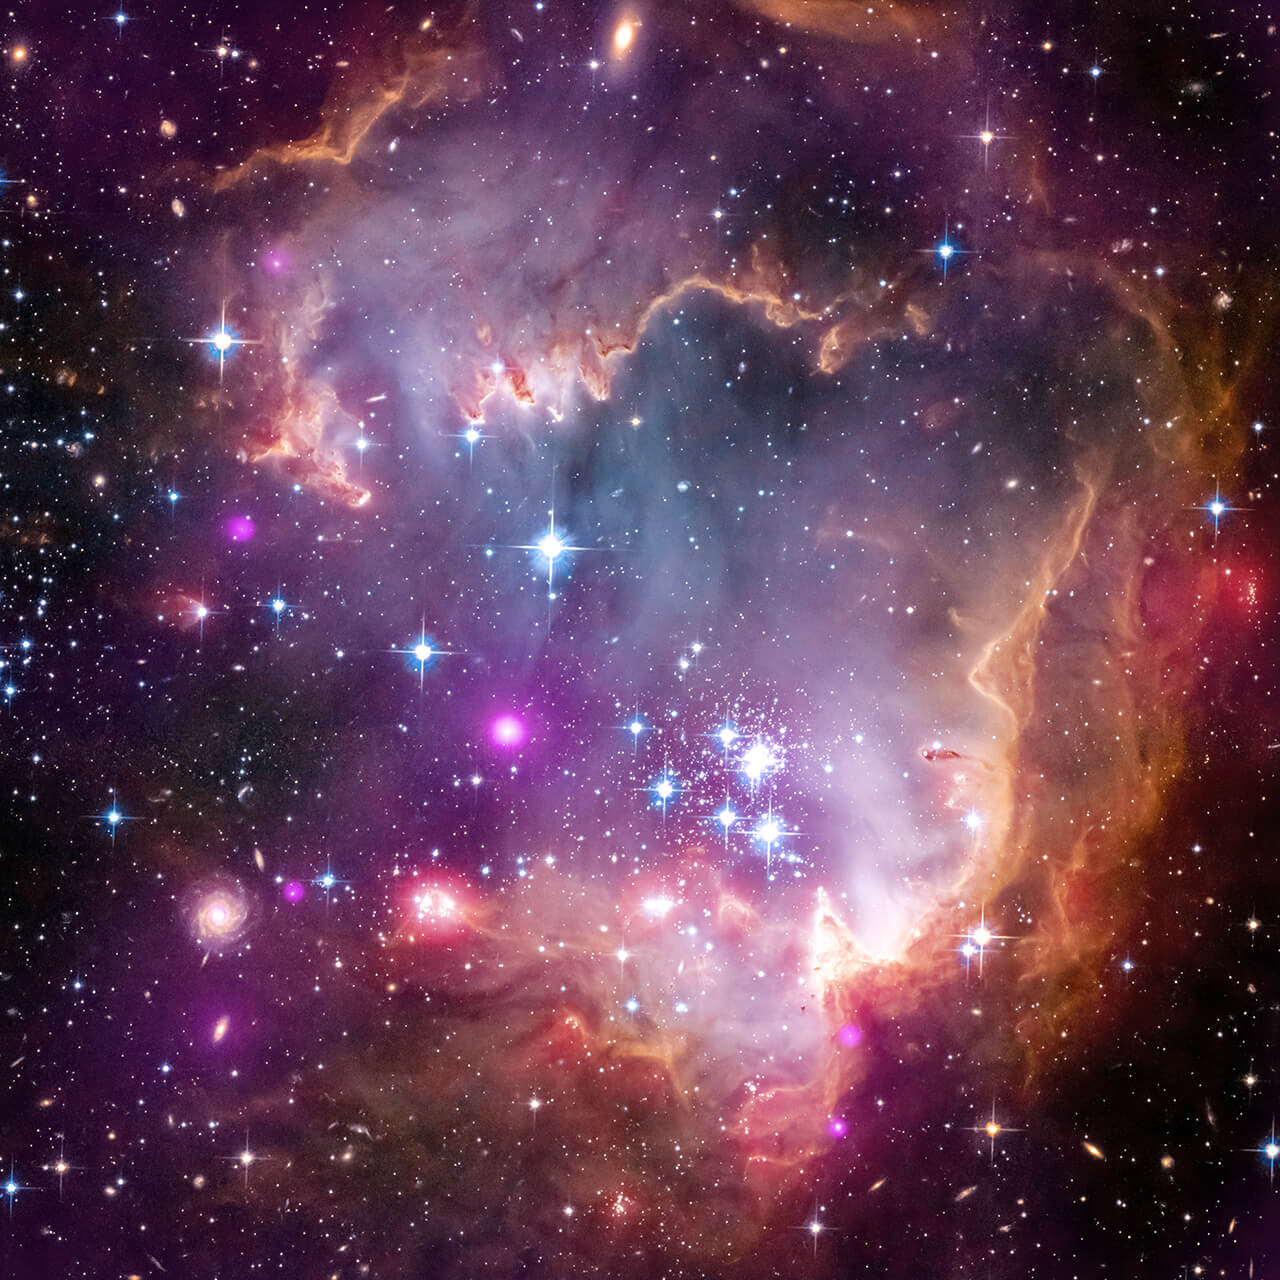 2013-taken_under_the_wing_of_the_small_magellanic_cloud.jpg